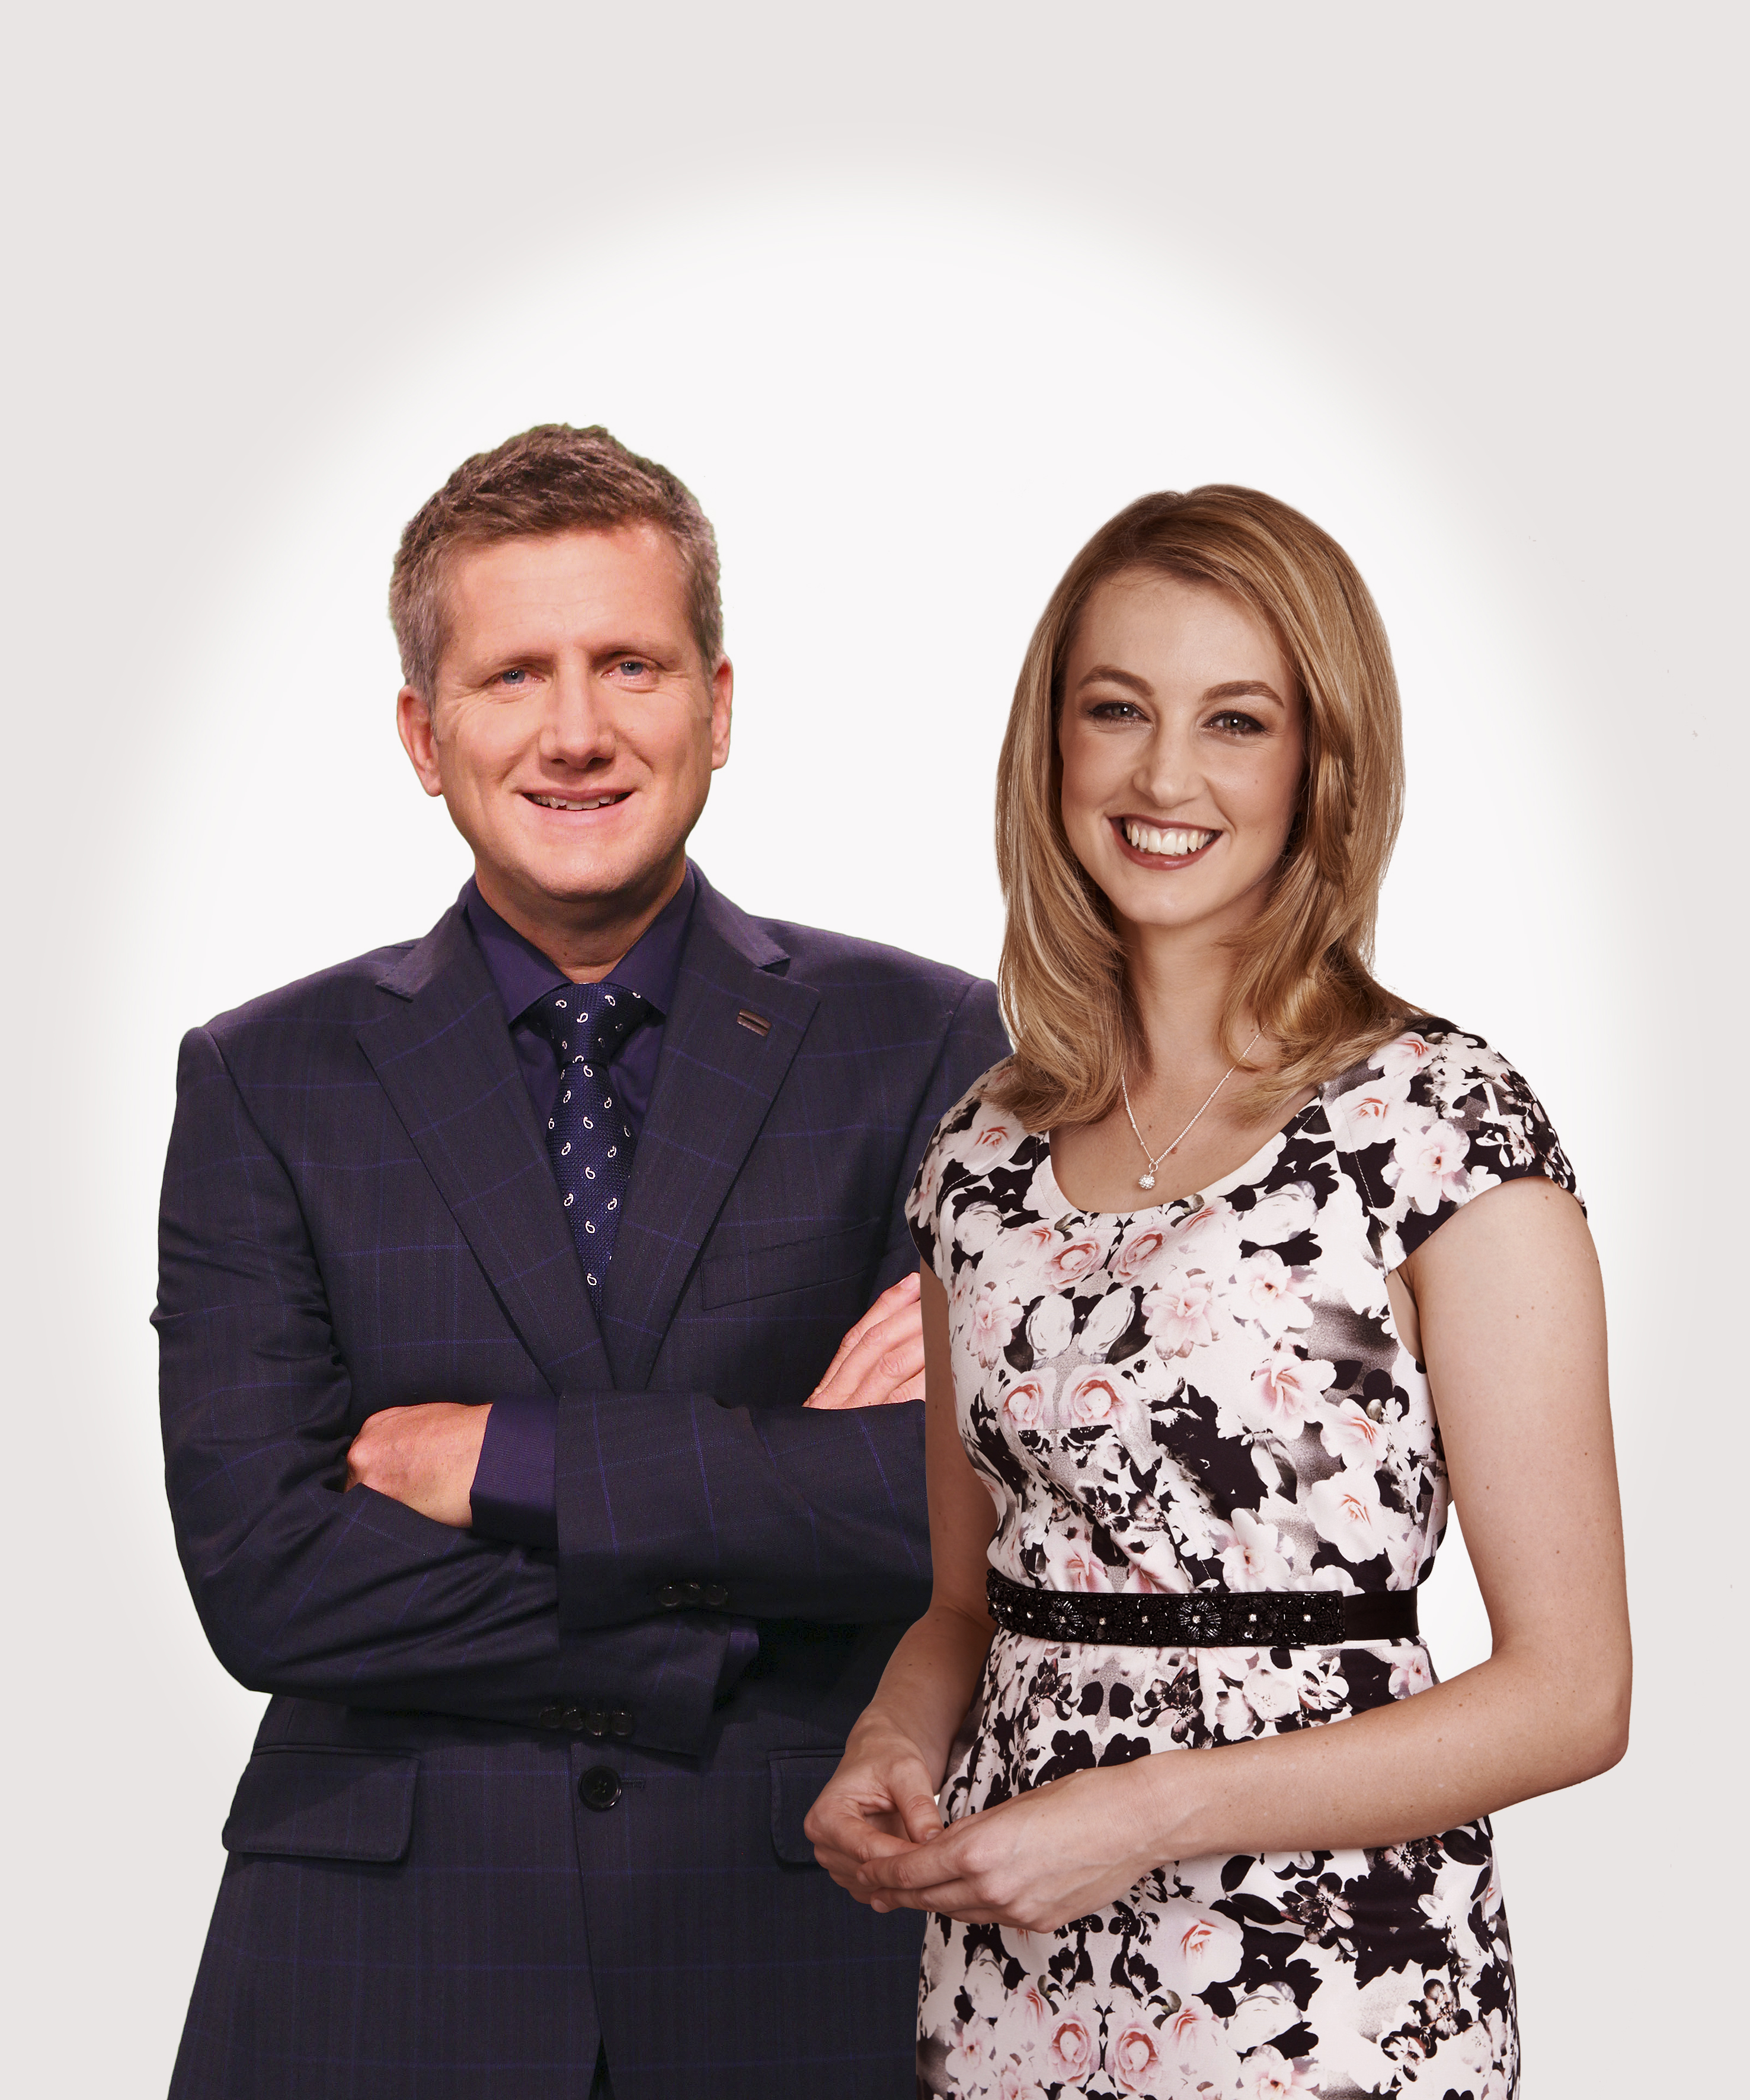 Fresh Faces for Prime News First at 5.30 - Wayne Hay and Janika ter Ellen